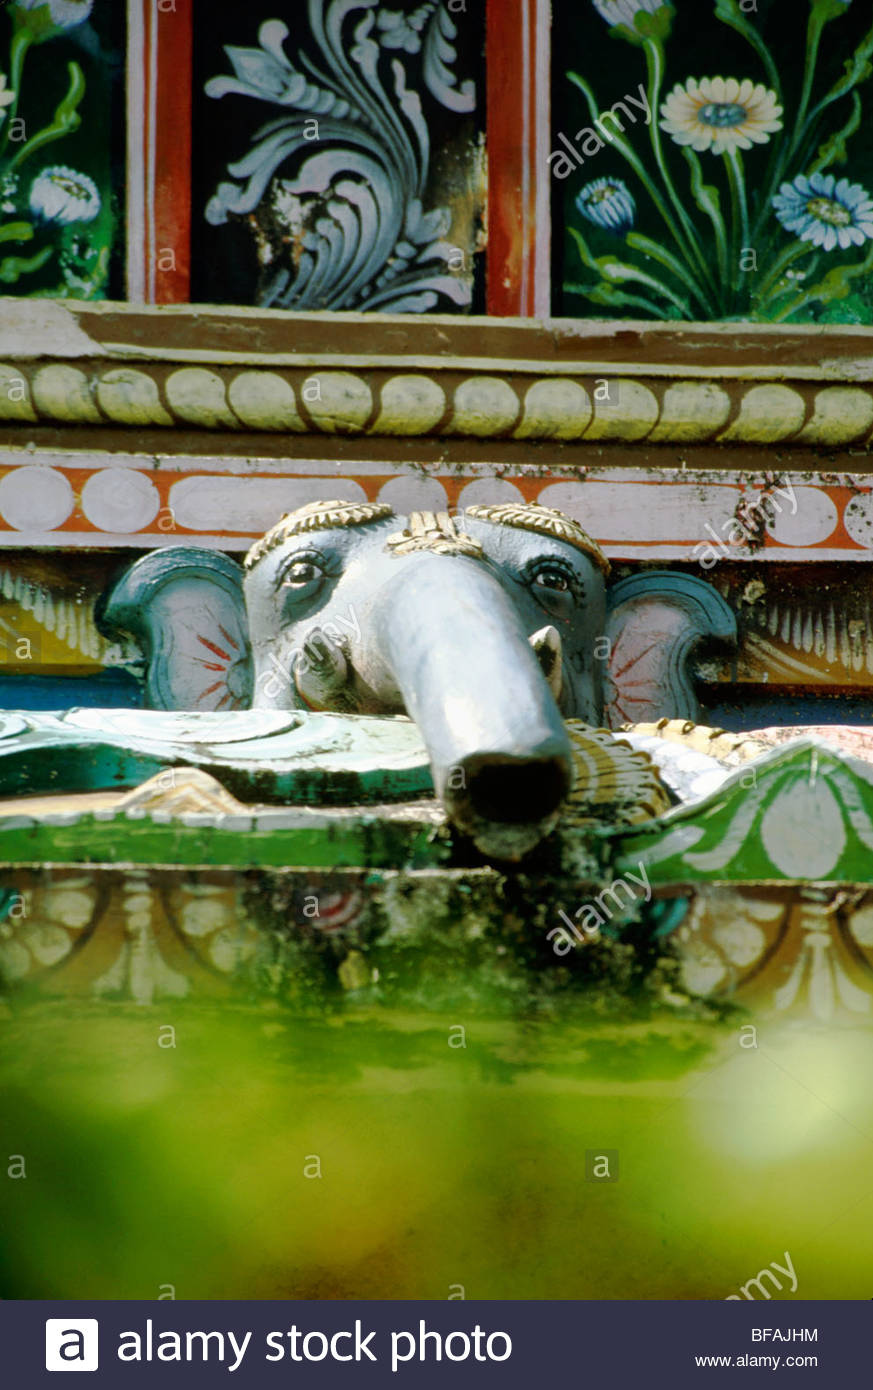 Elephant as downspout on Hindu temple, Kerala, India - Stock Image